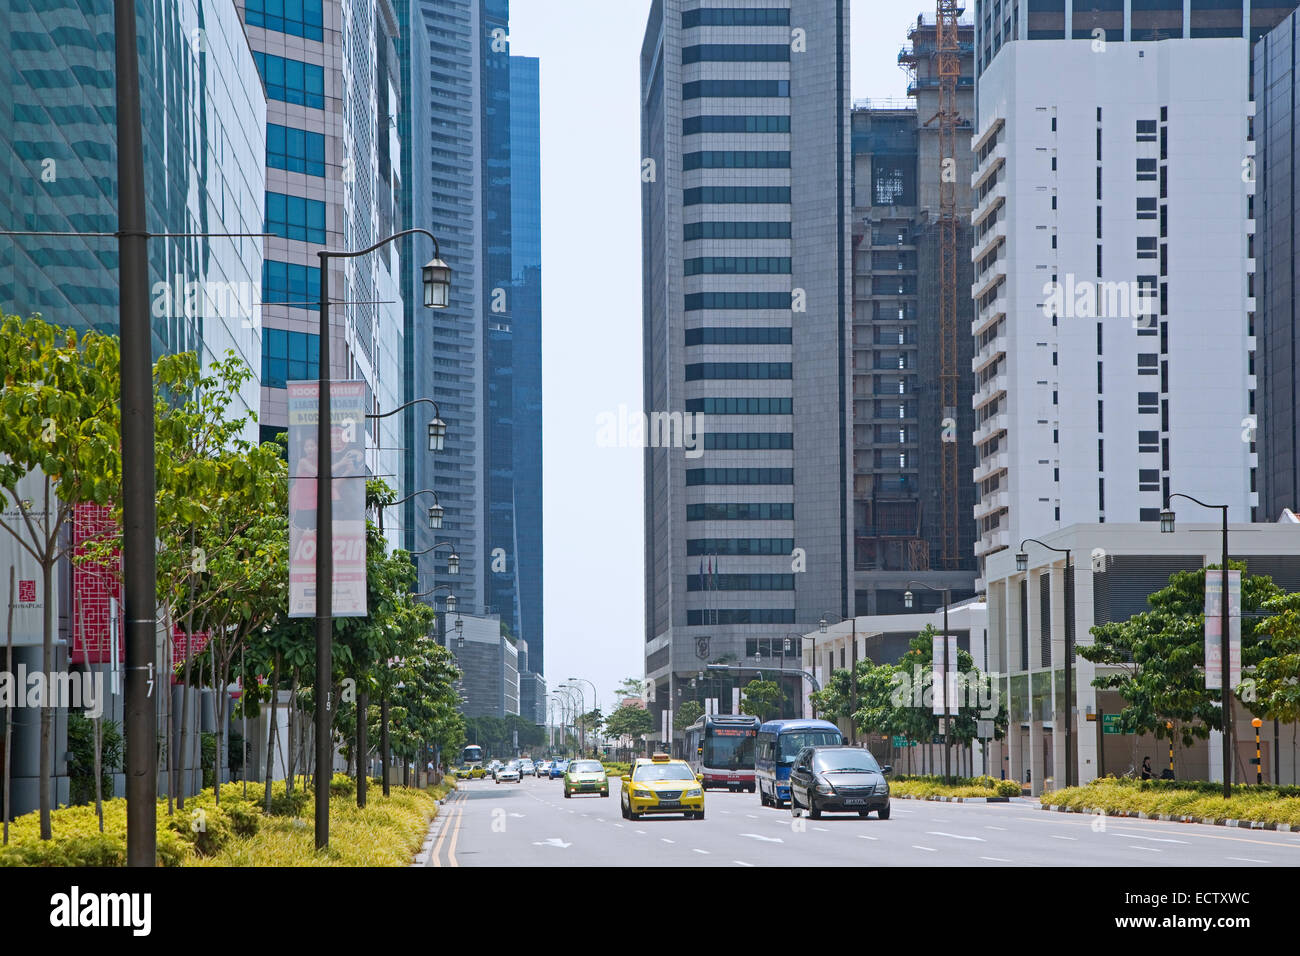 Traffic and high-rise office blocks and skyscrapers in the Central Area / Central Business District of Singapore - Stock Image